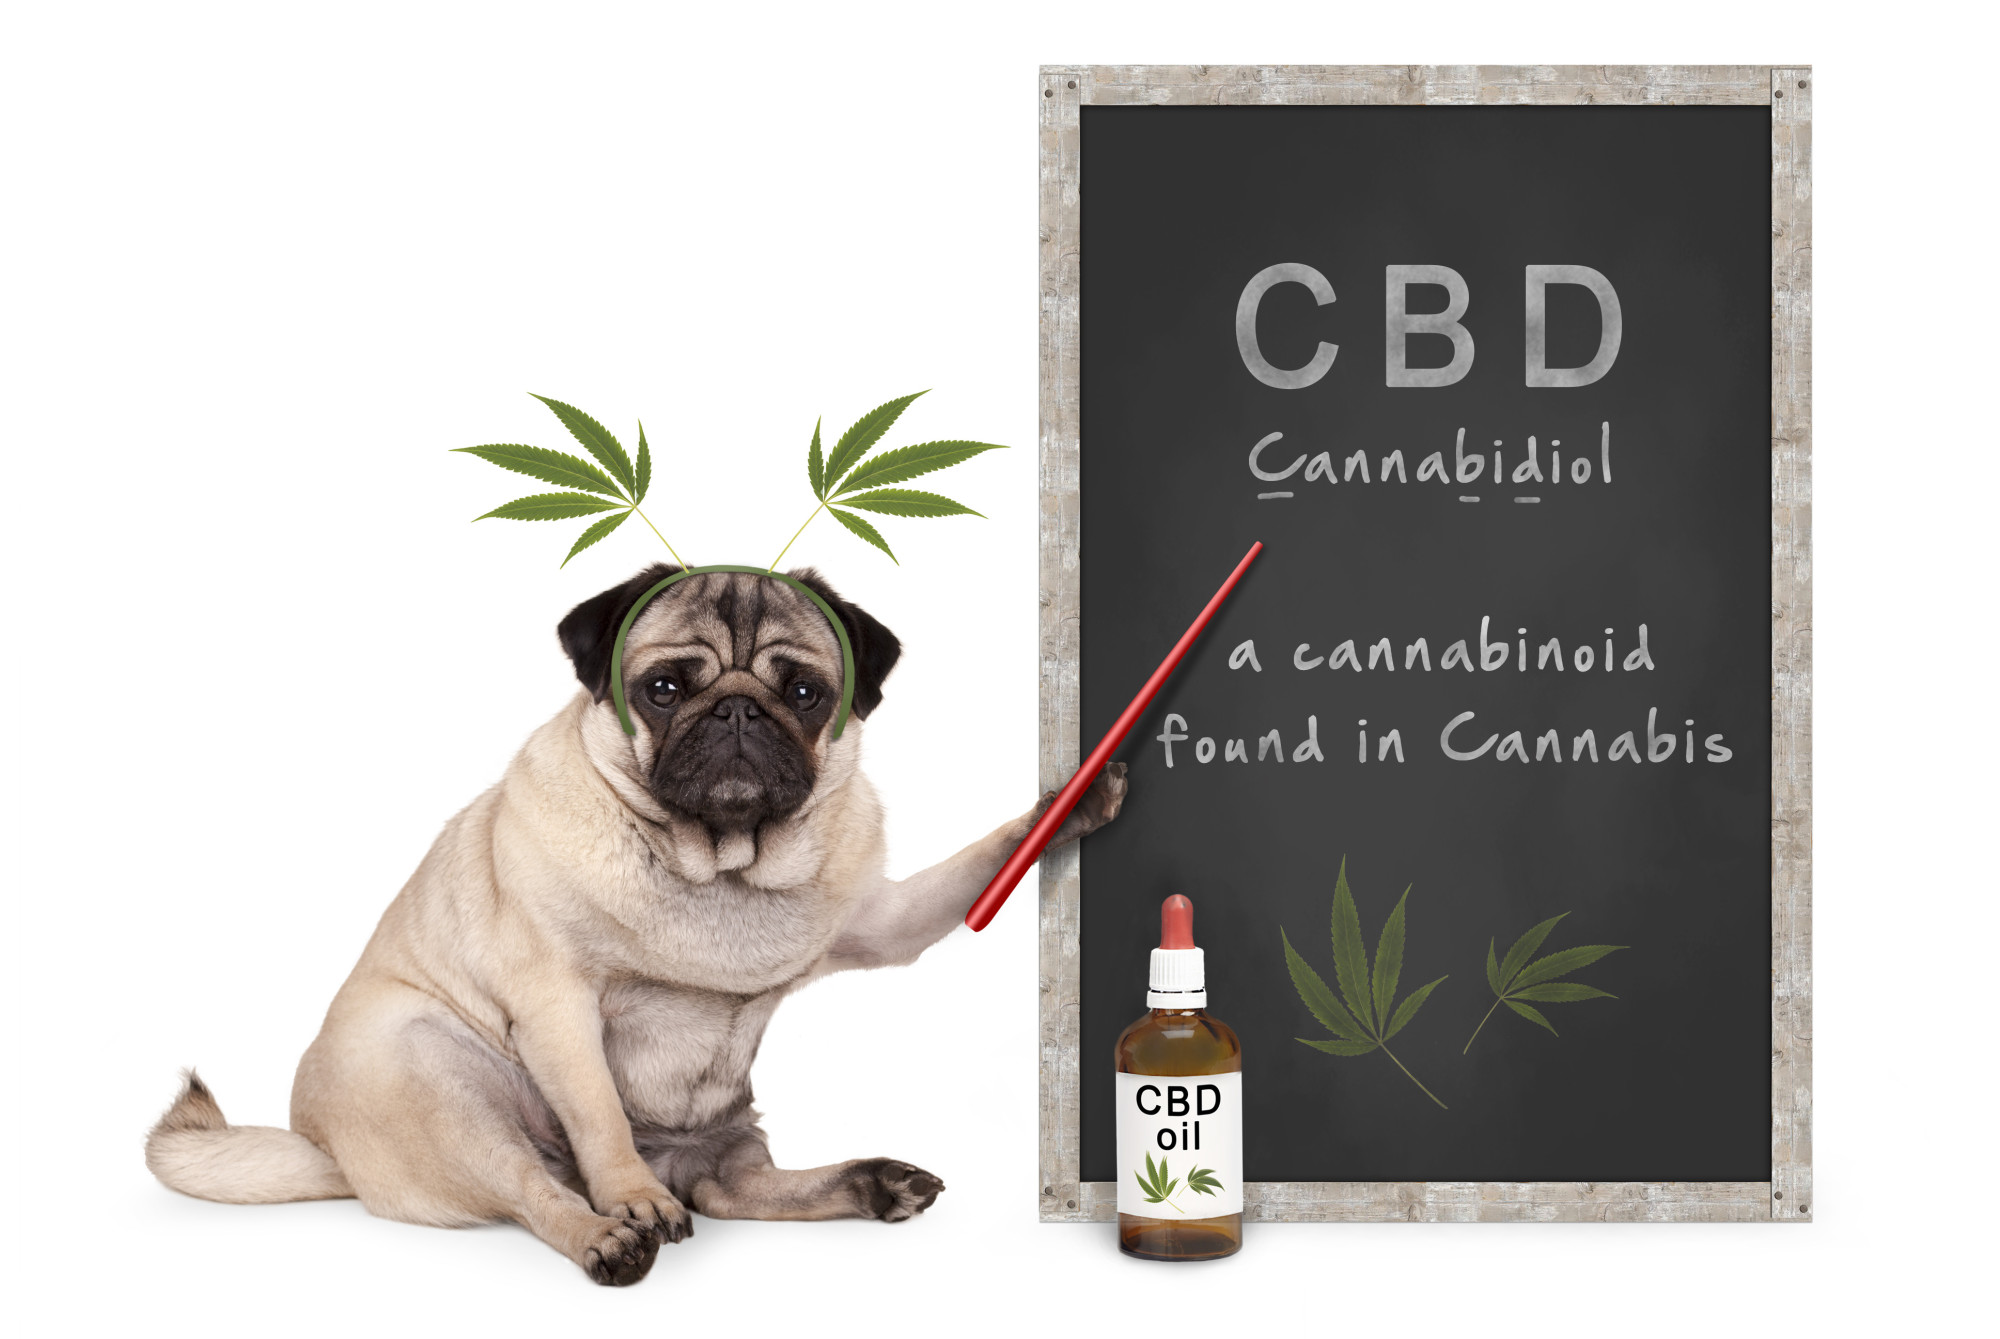 cbd text on chalkboard with dog